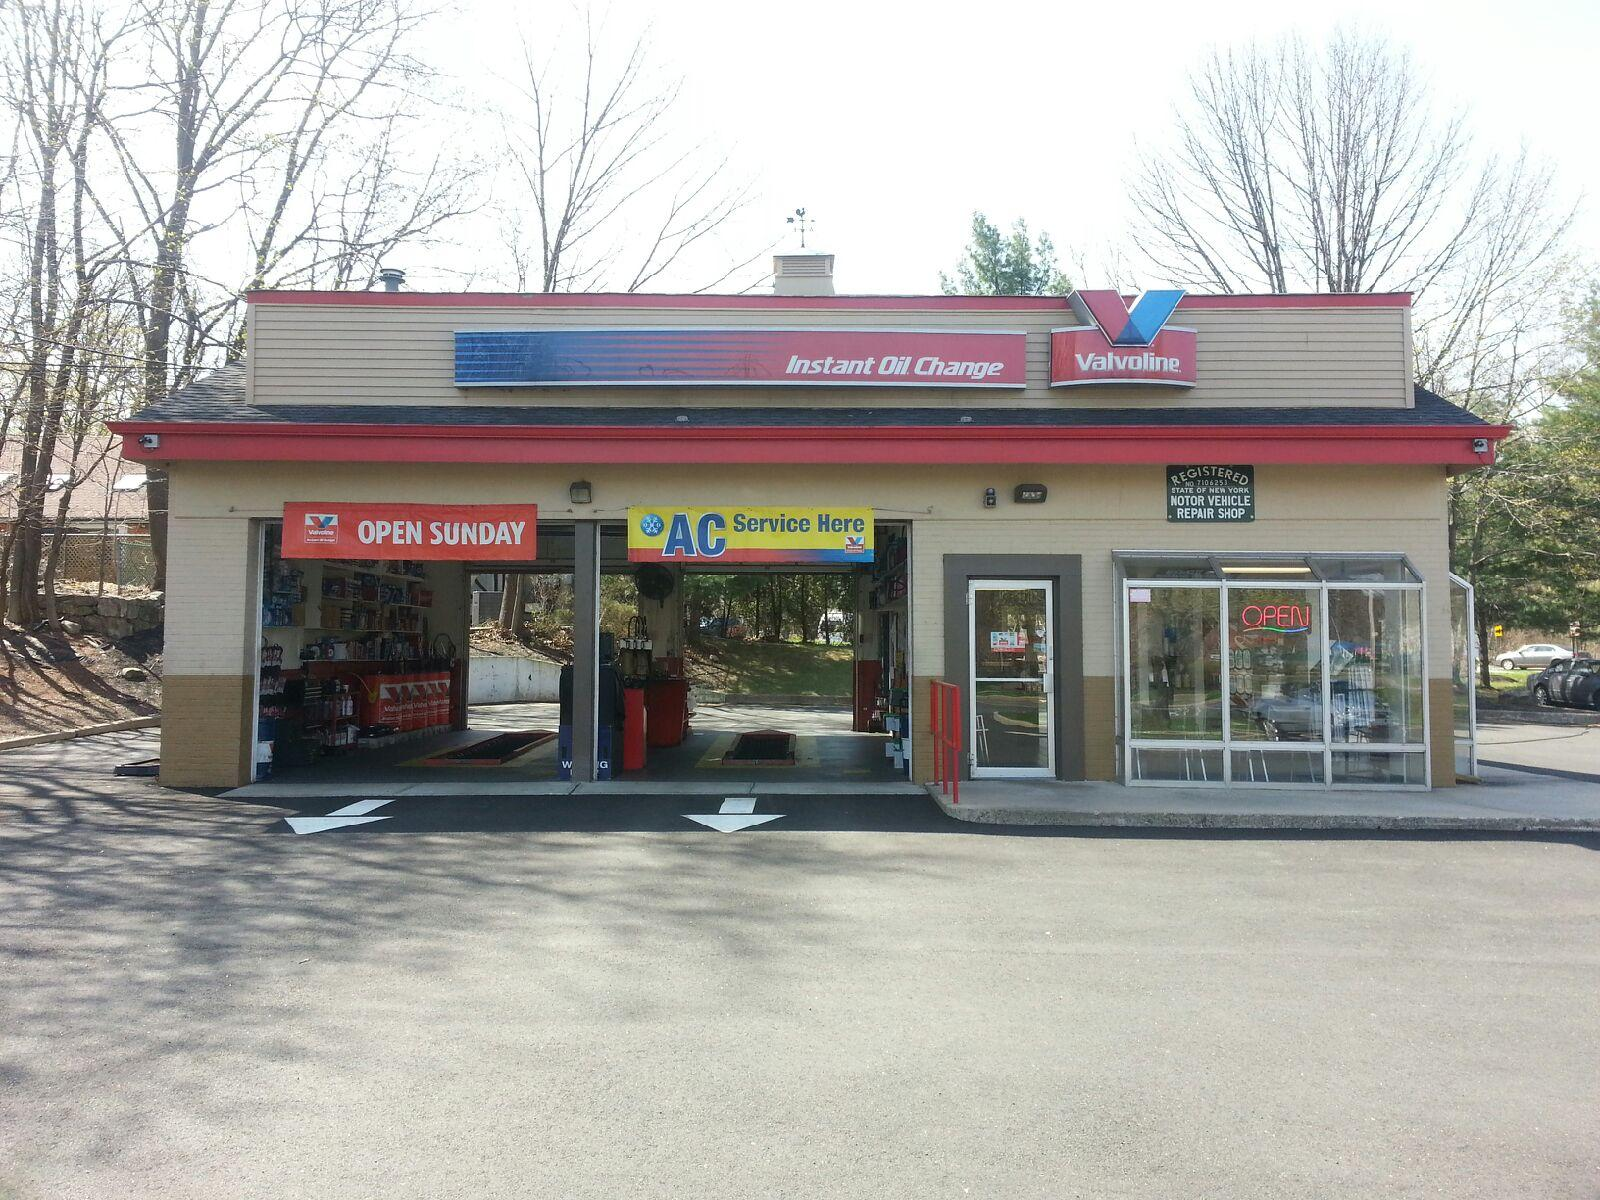 Valvoline Instant Oil Change We let you stay in the car, so you can see the job done right — right before your eyes. Here are three more good reasons to choose Valvoline Instant Oil Change.